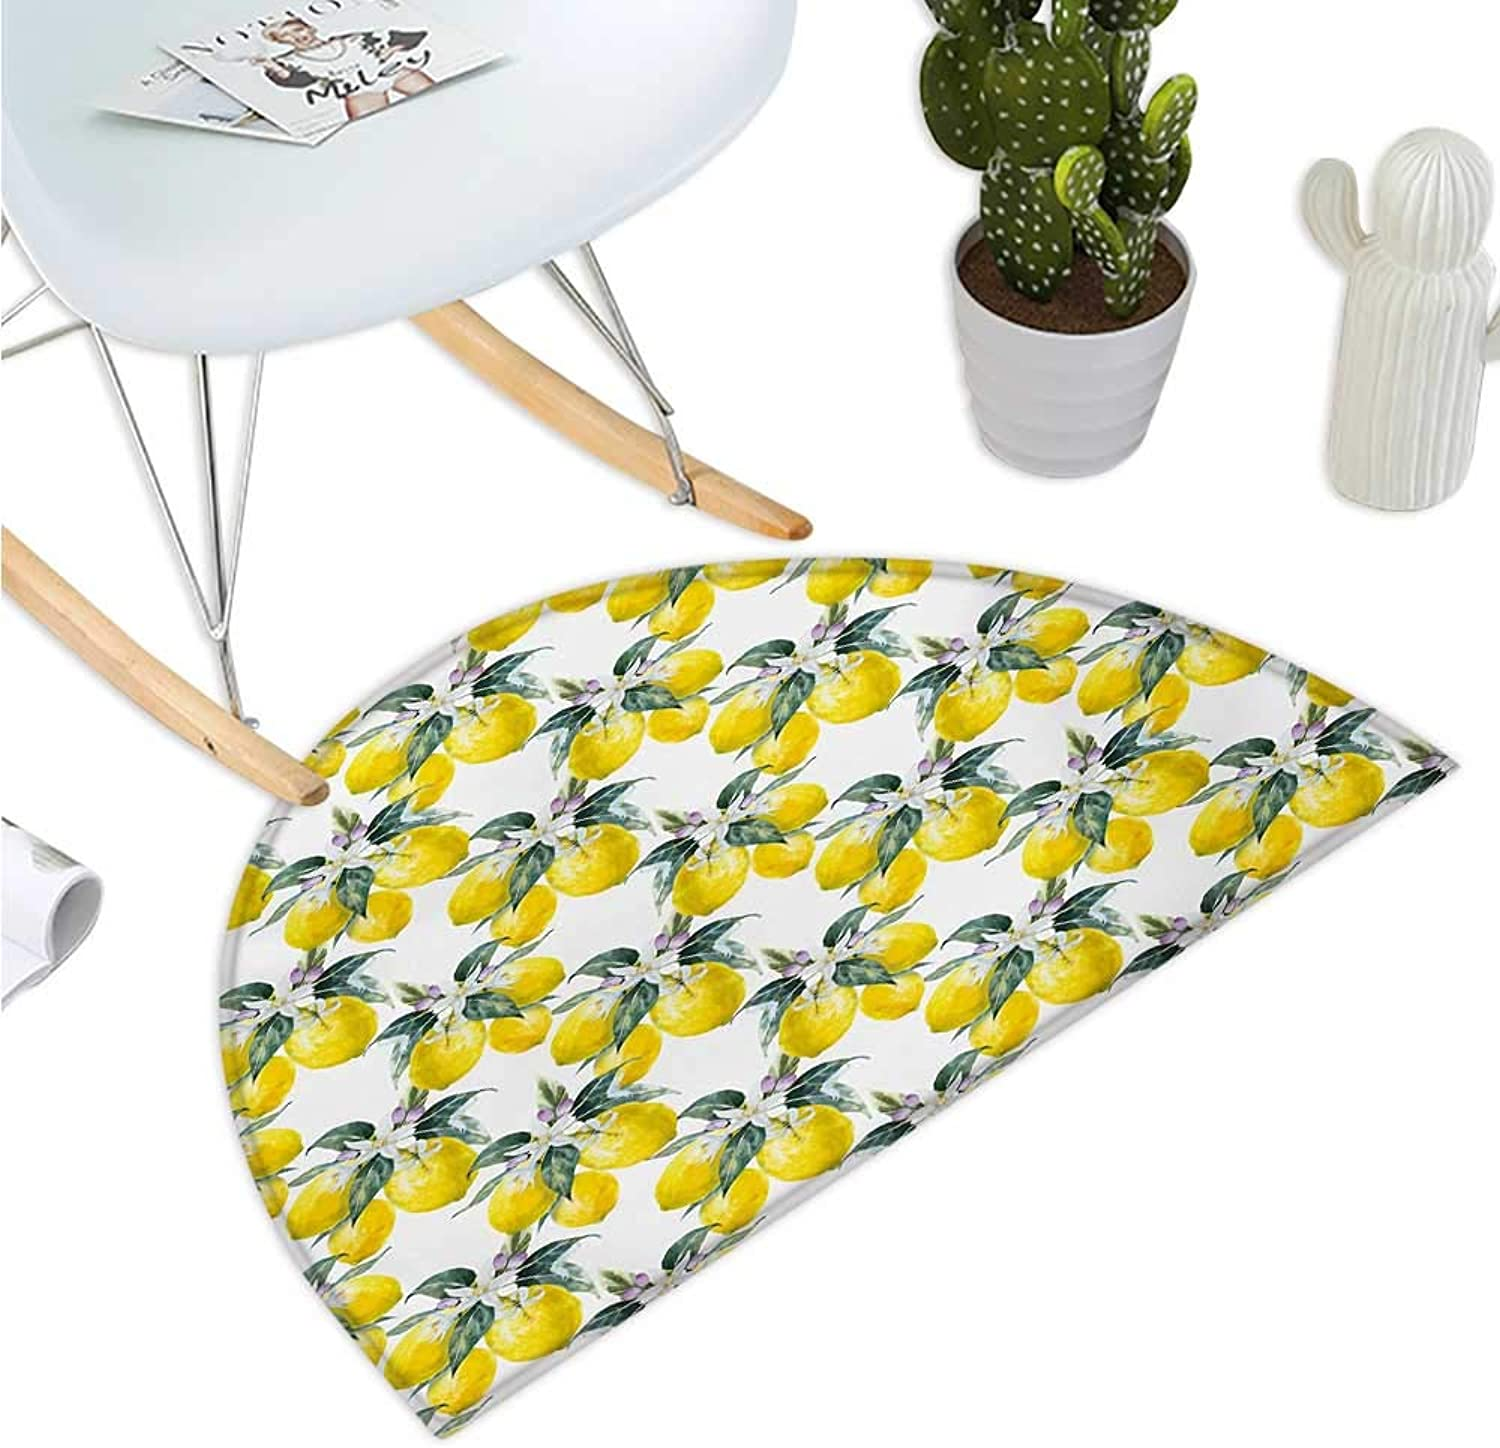 Nature Semicircle Doormat Lemons Flowers Inspirational Summer Season Fruits Mother Earth Boho Pattern Entry Door Mat H 35.4  xD 53.1  Reseda Green Yellow